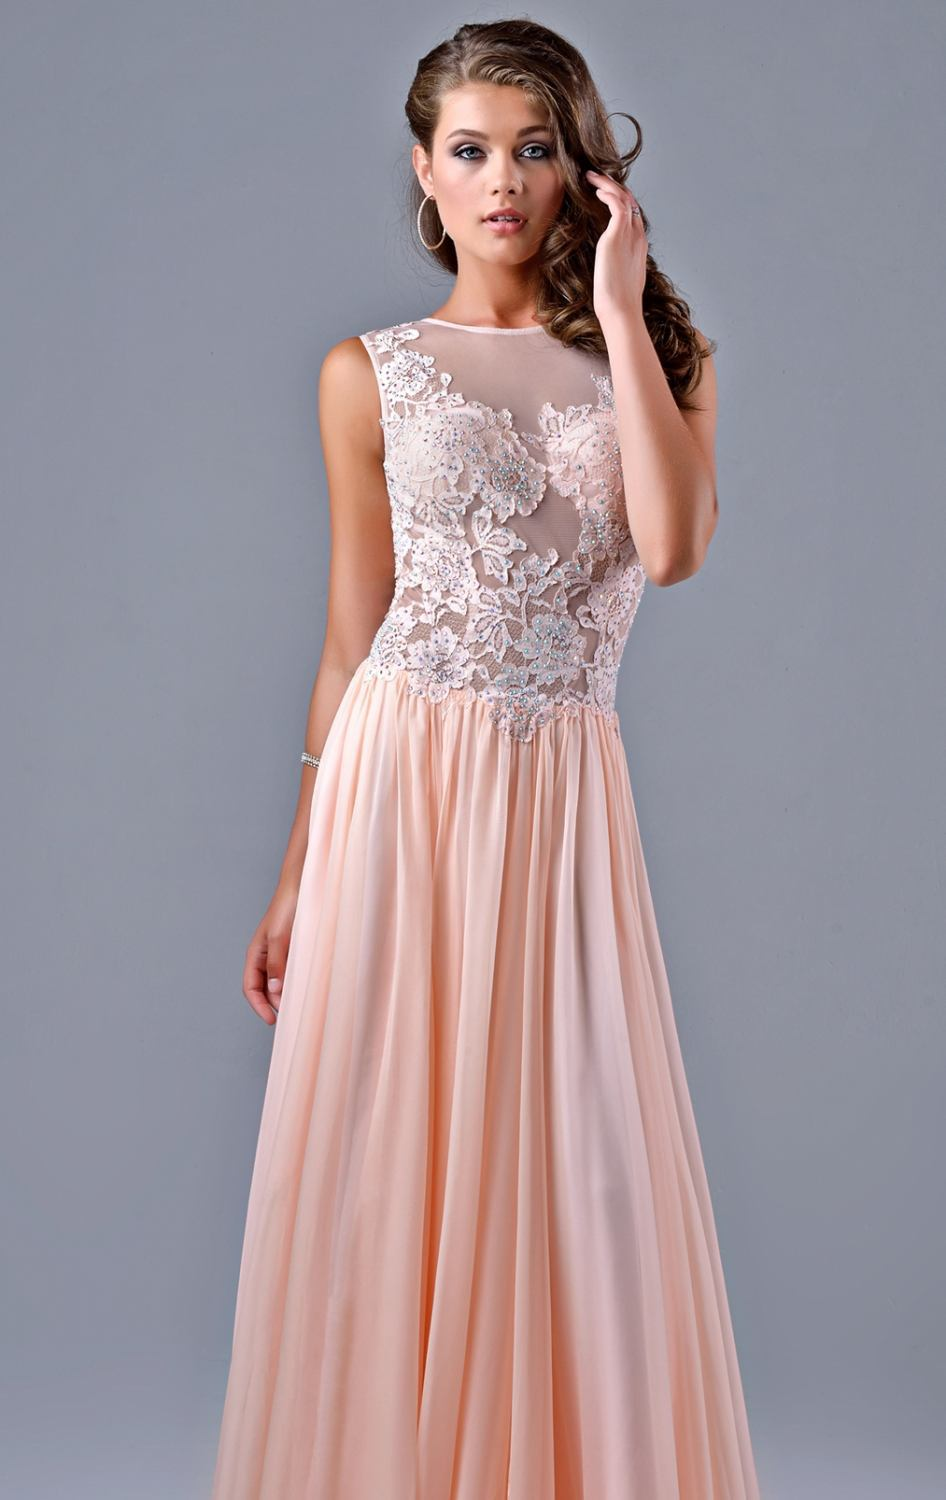 Free Shipping 2015 New Arrival Soft Pink Chiffon Prom Dress Low V ...